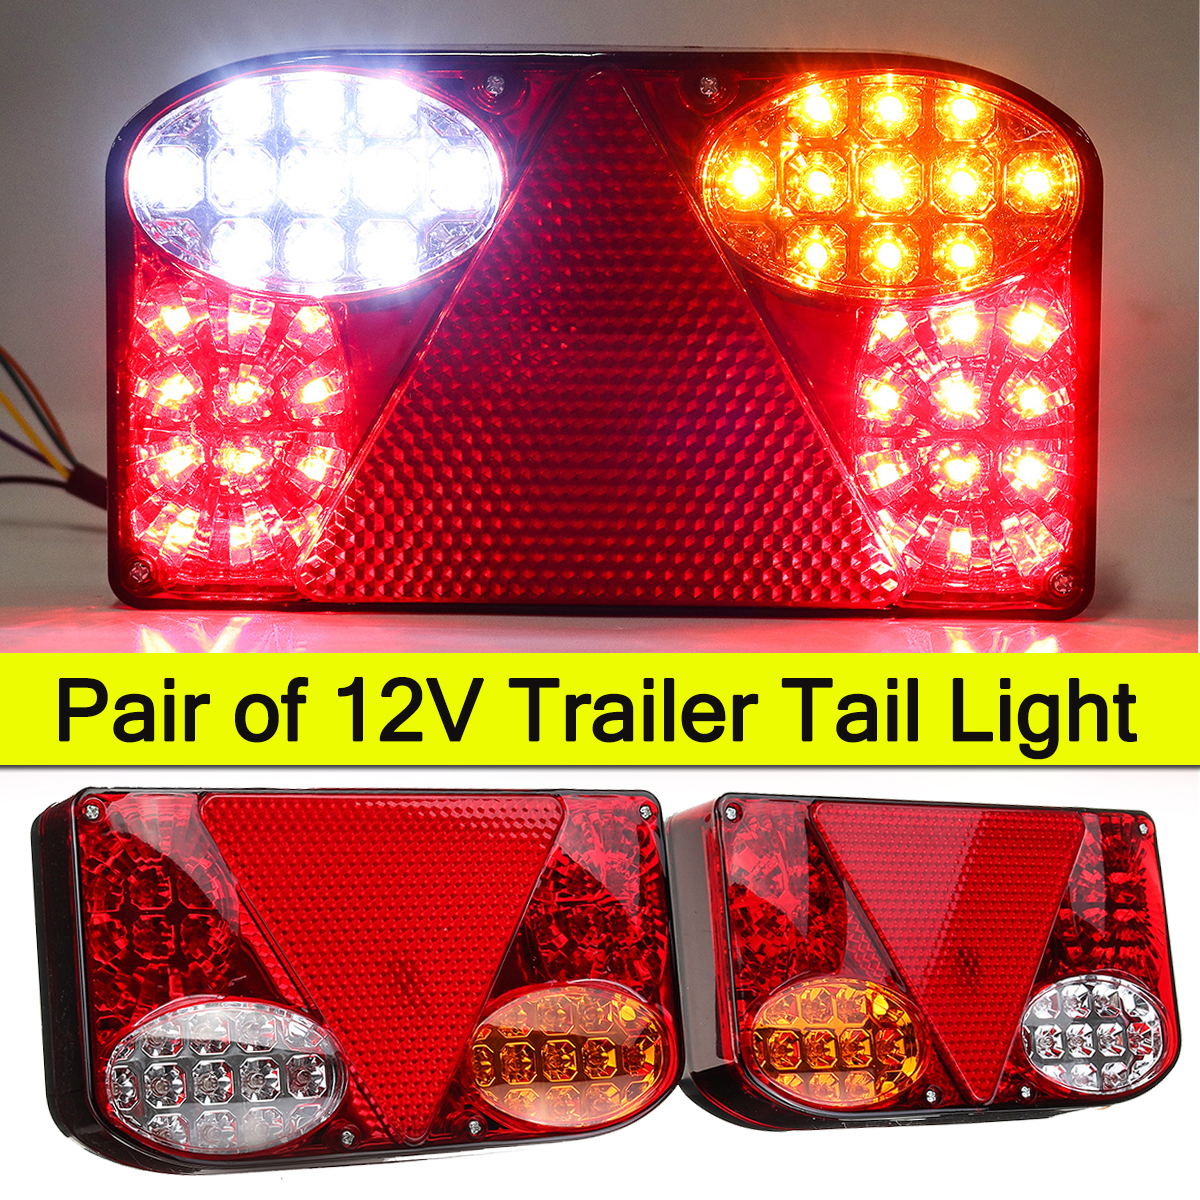 2X 12V LED Car Tail Light Rear Lamps For Trailer Truck Van Campers Pick-ups Boat ATV Tippers Chassis Lighting Waterproof Durable